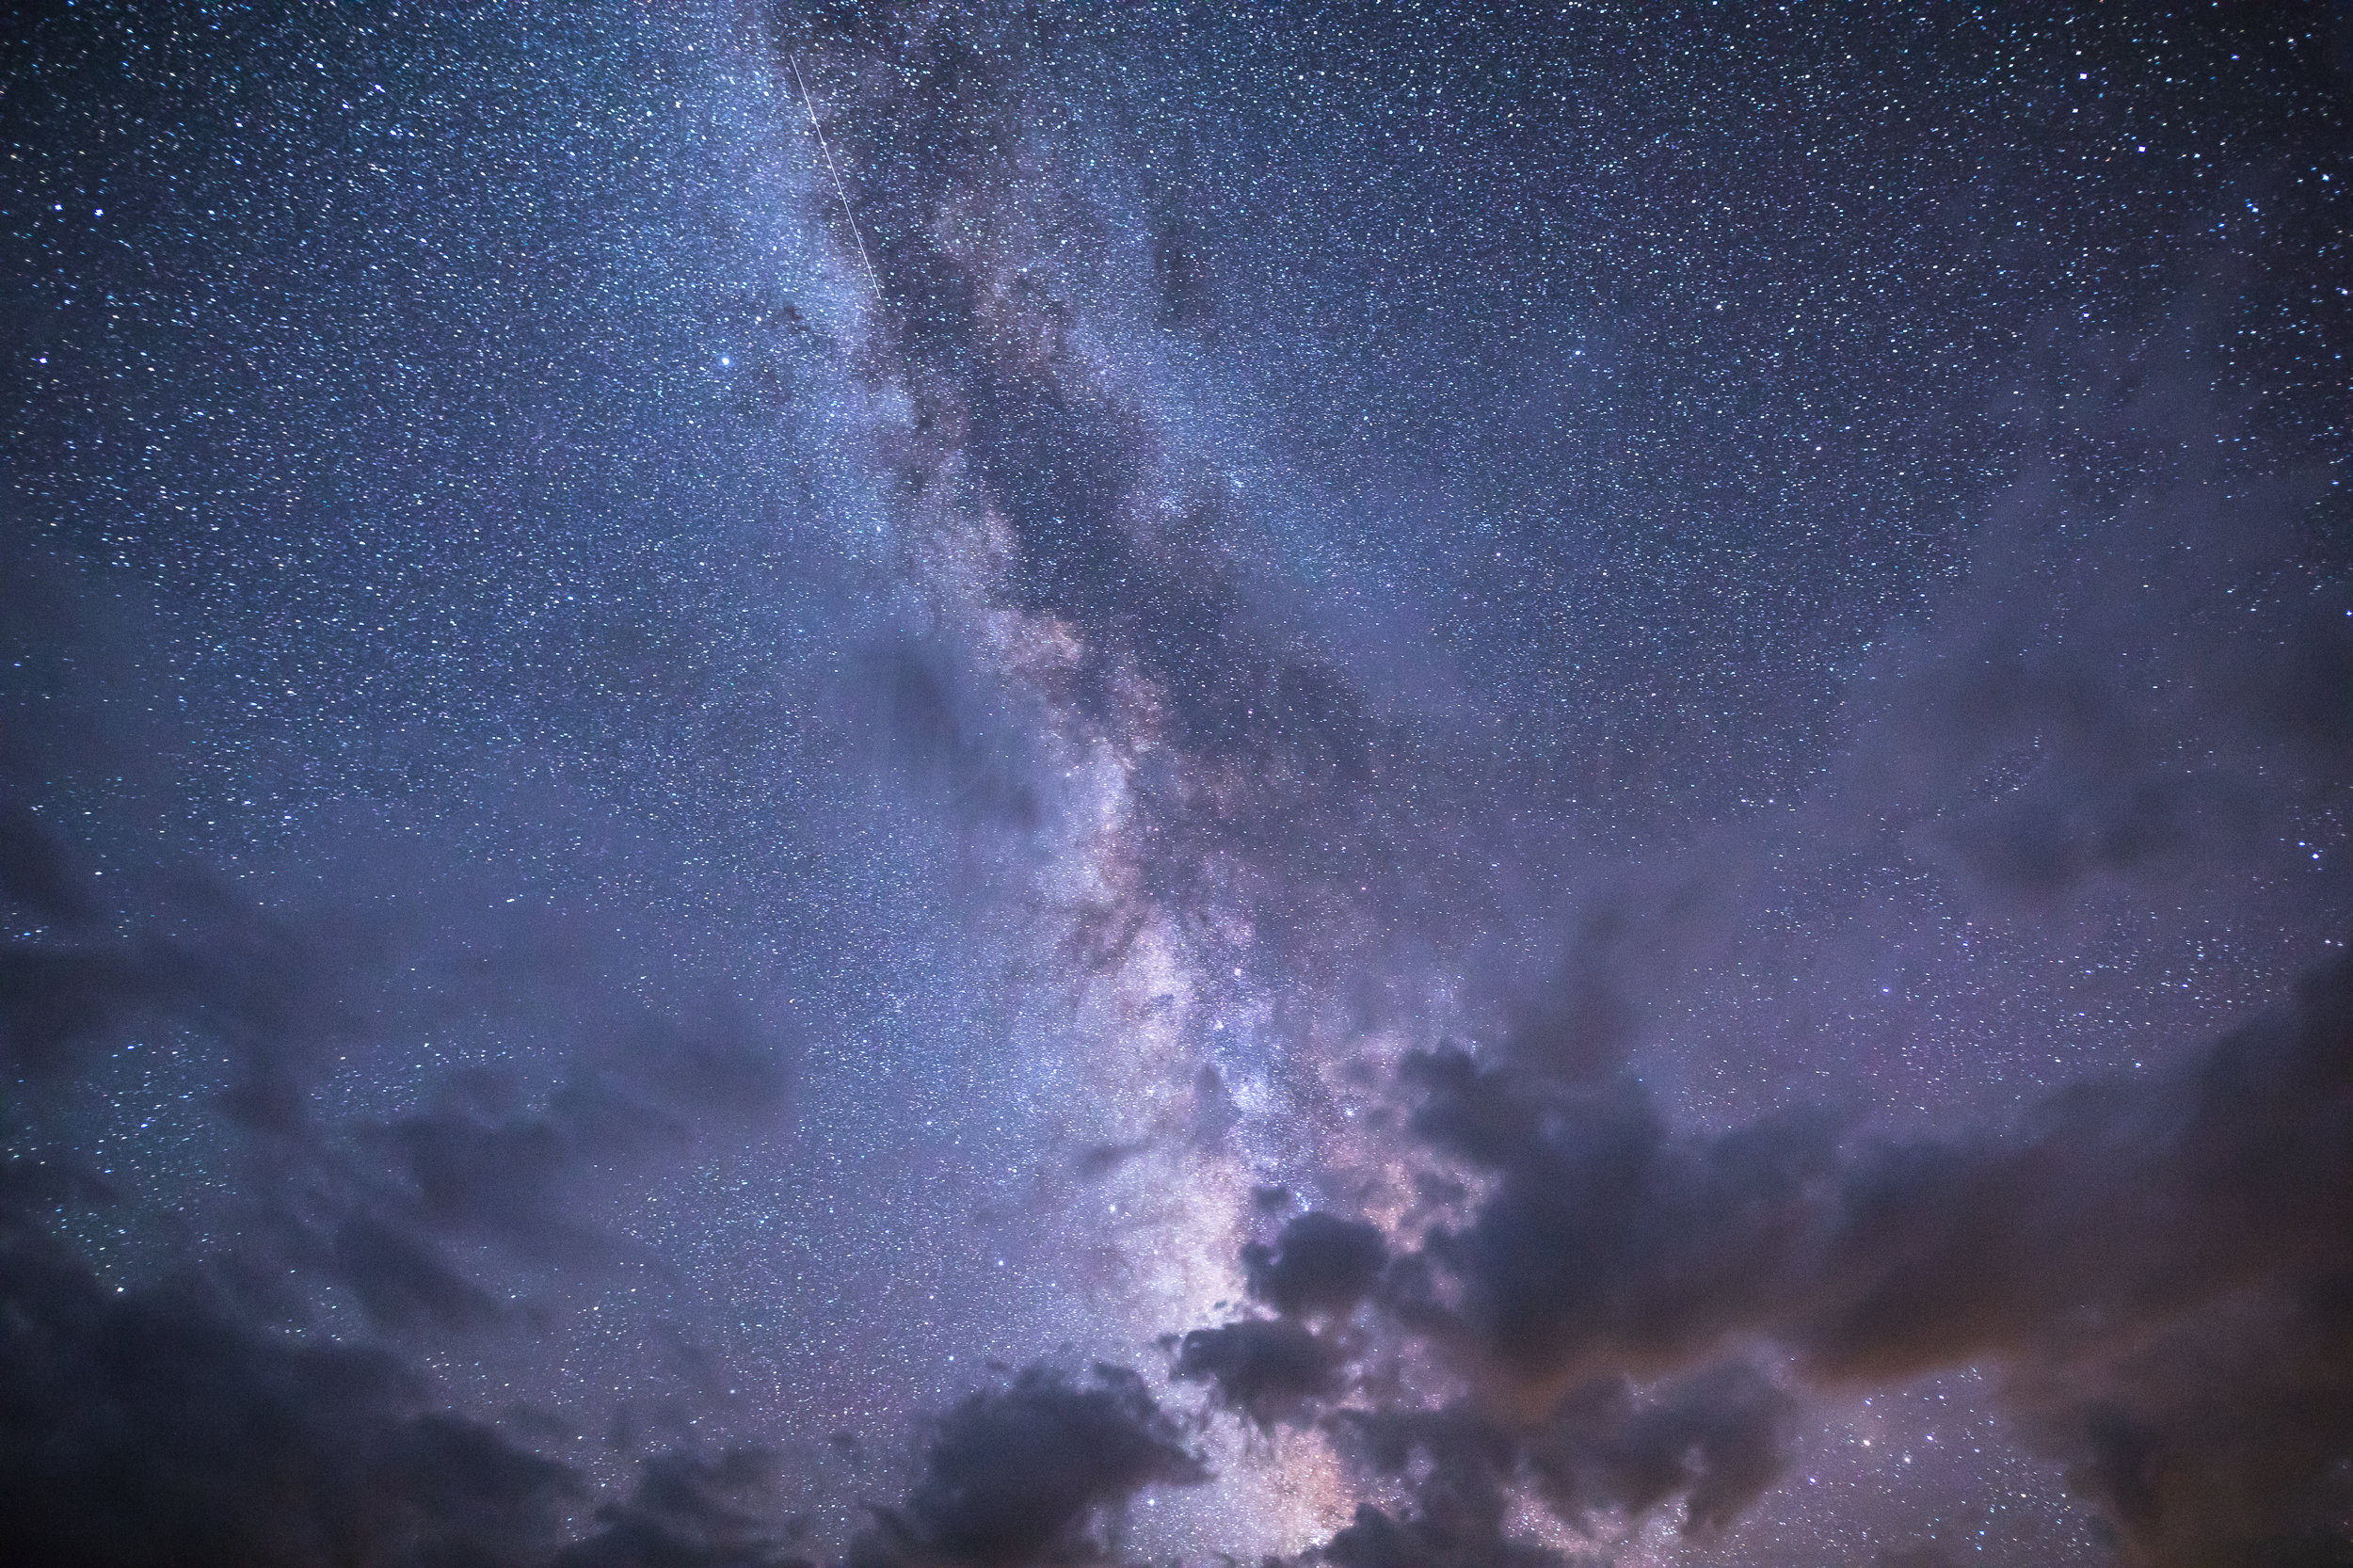 Beautiful Night Sky with Clouds and Milky Way, Image # 7505